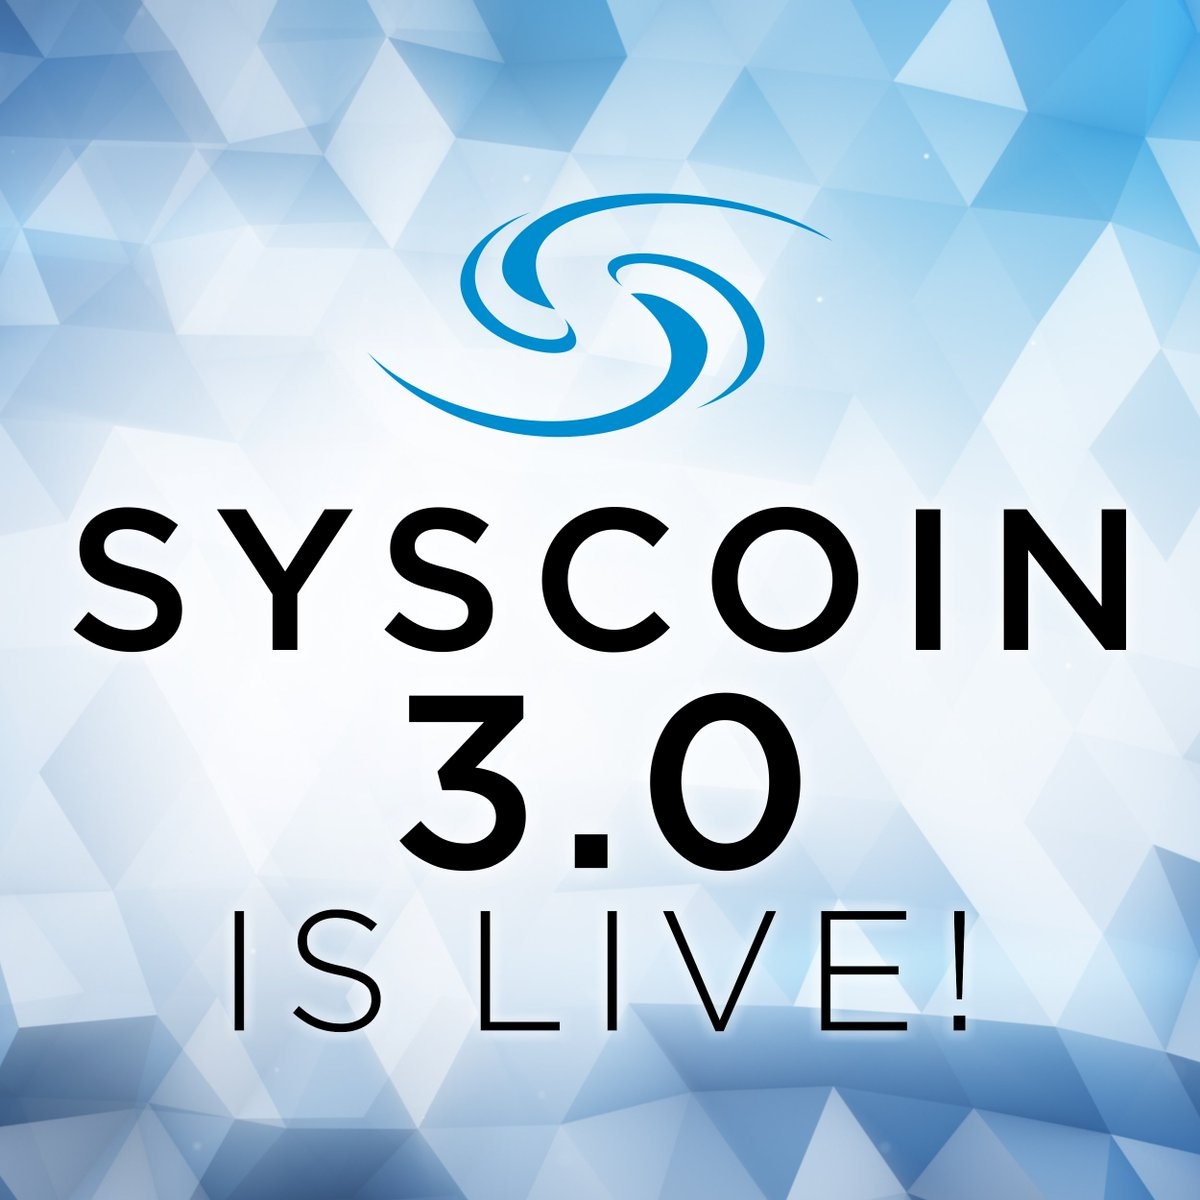 Syscoin 3 0 Is Live See Our Blog Post